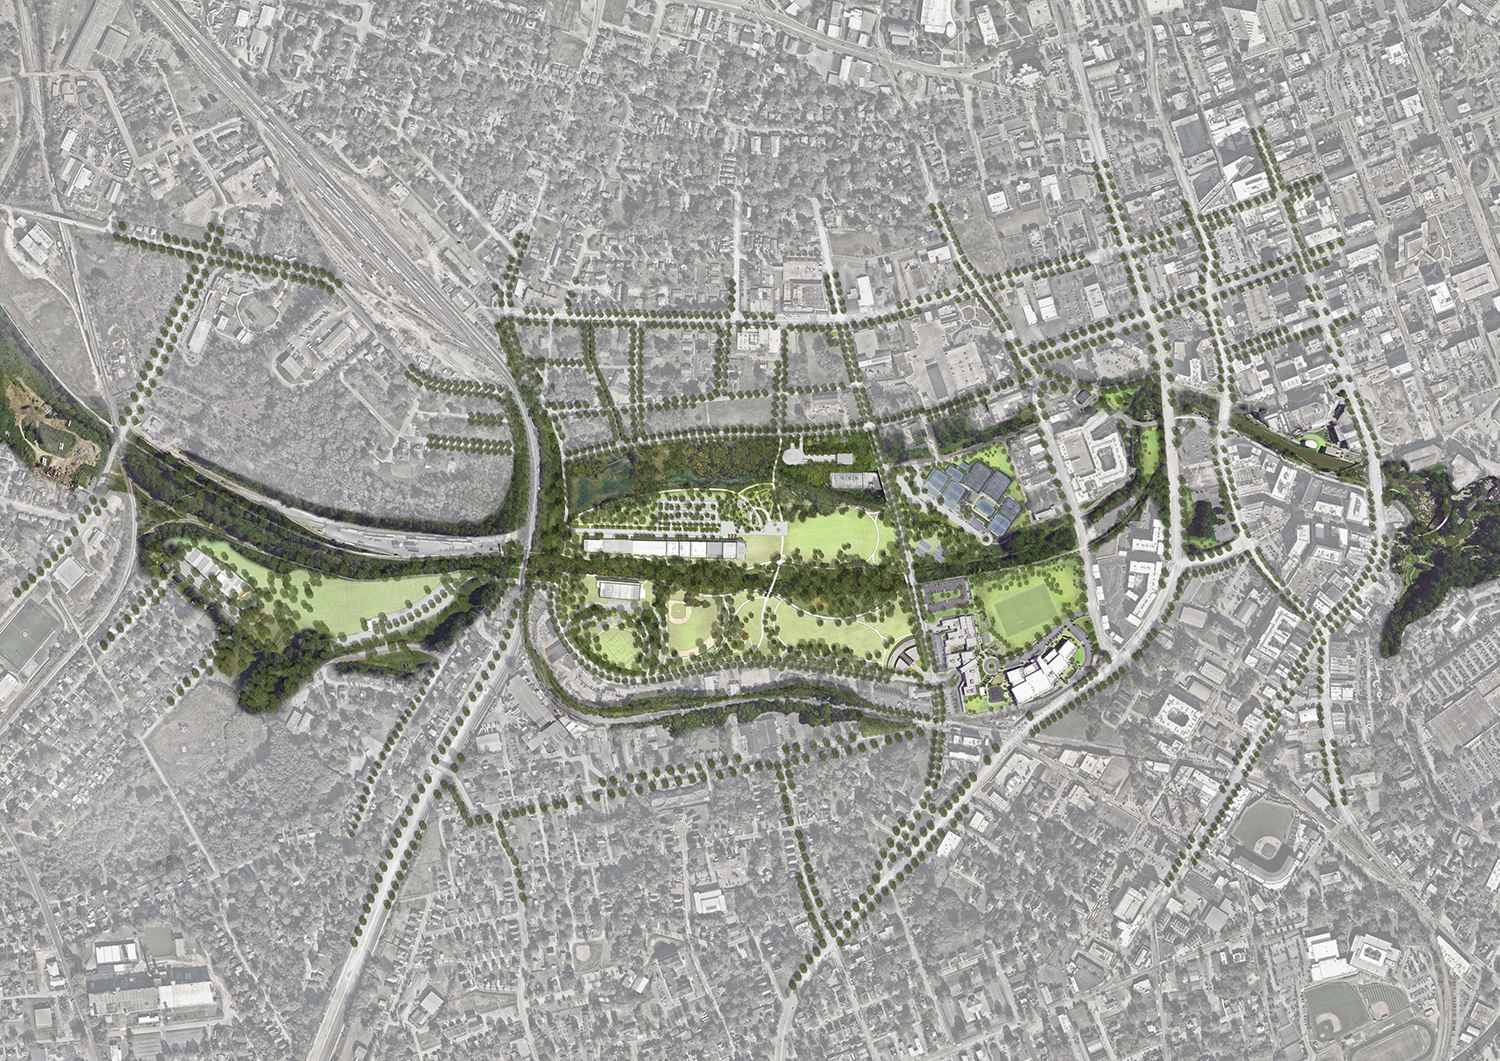 Unity Park - Illustrative Plan - 34x22 - 200sc lower-Web.jpg